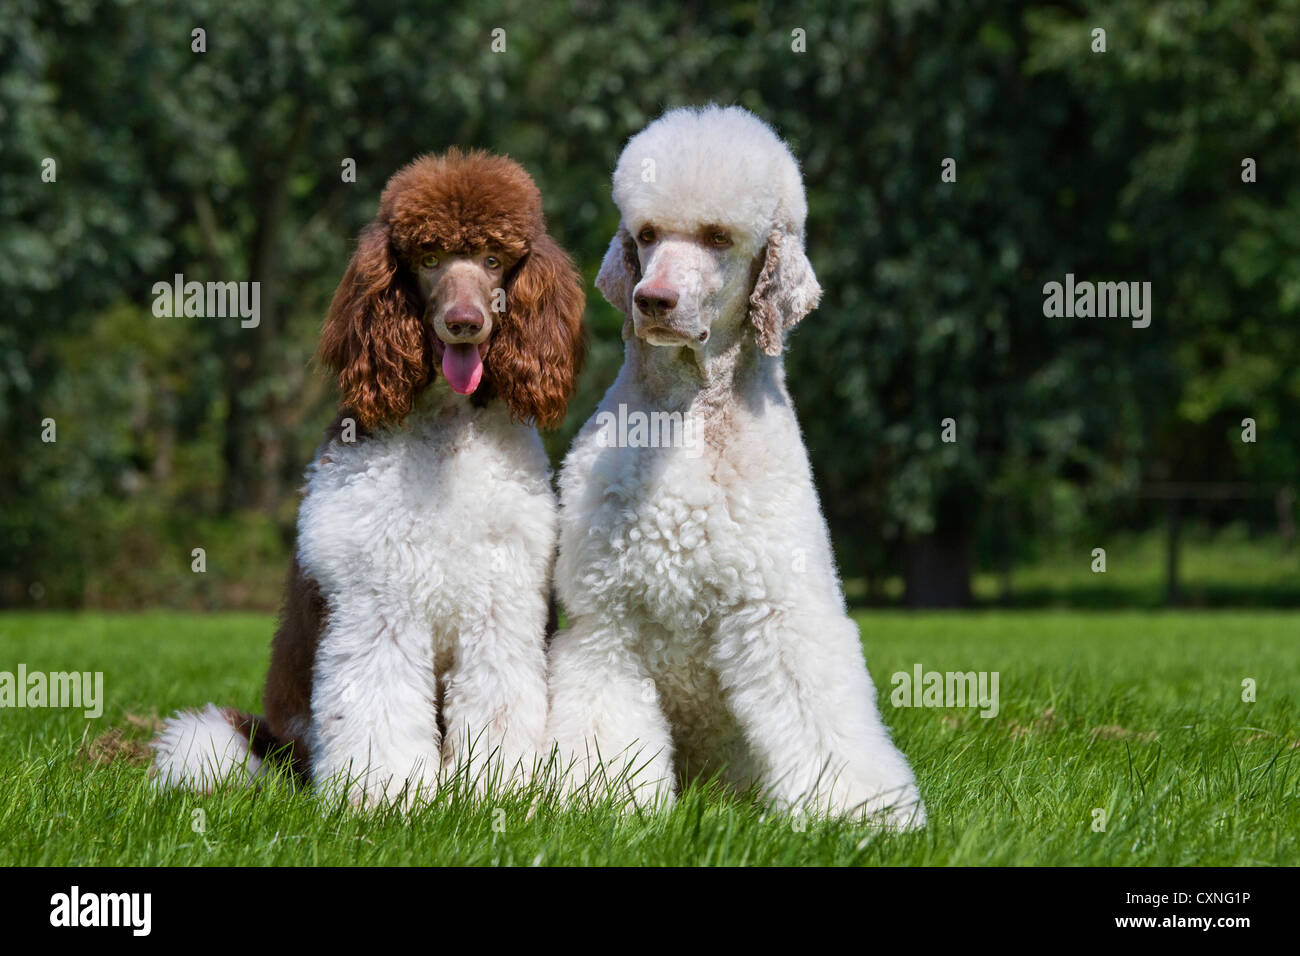 Harlequin and standard poodles (Canis lupus familiaris) in garden - Stock Image